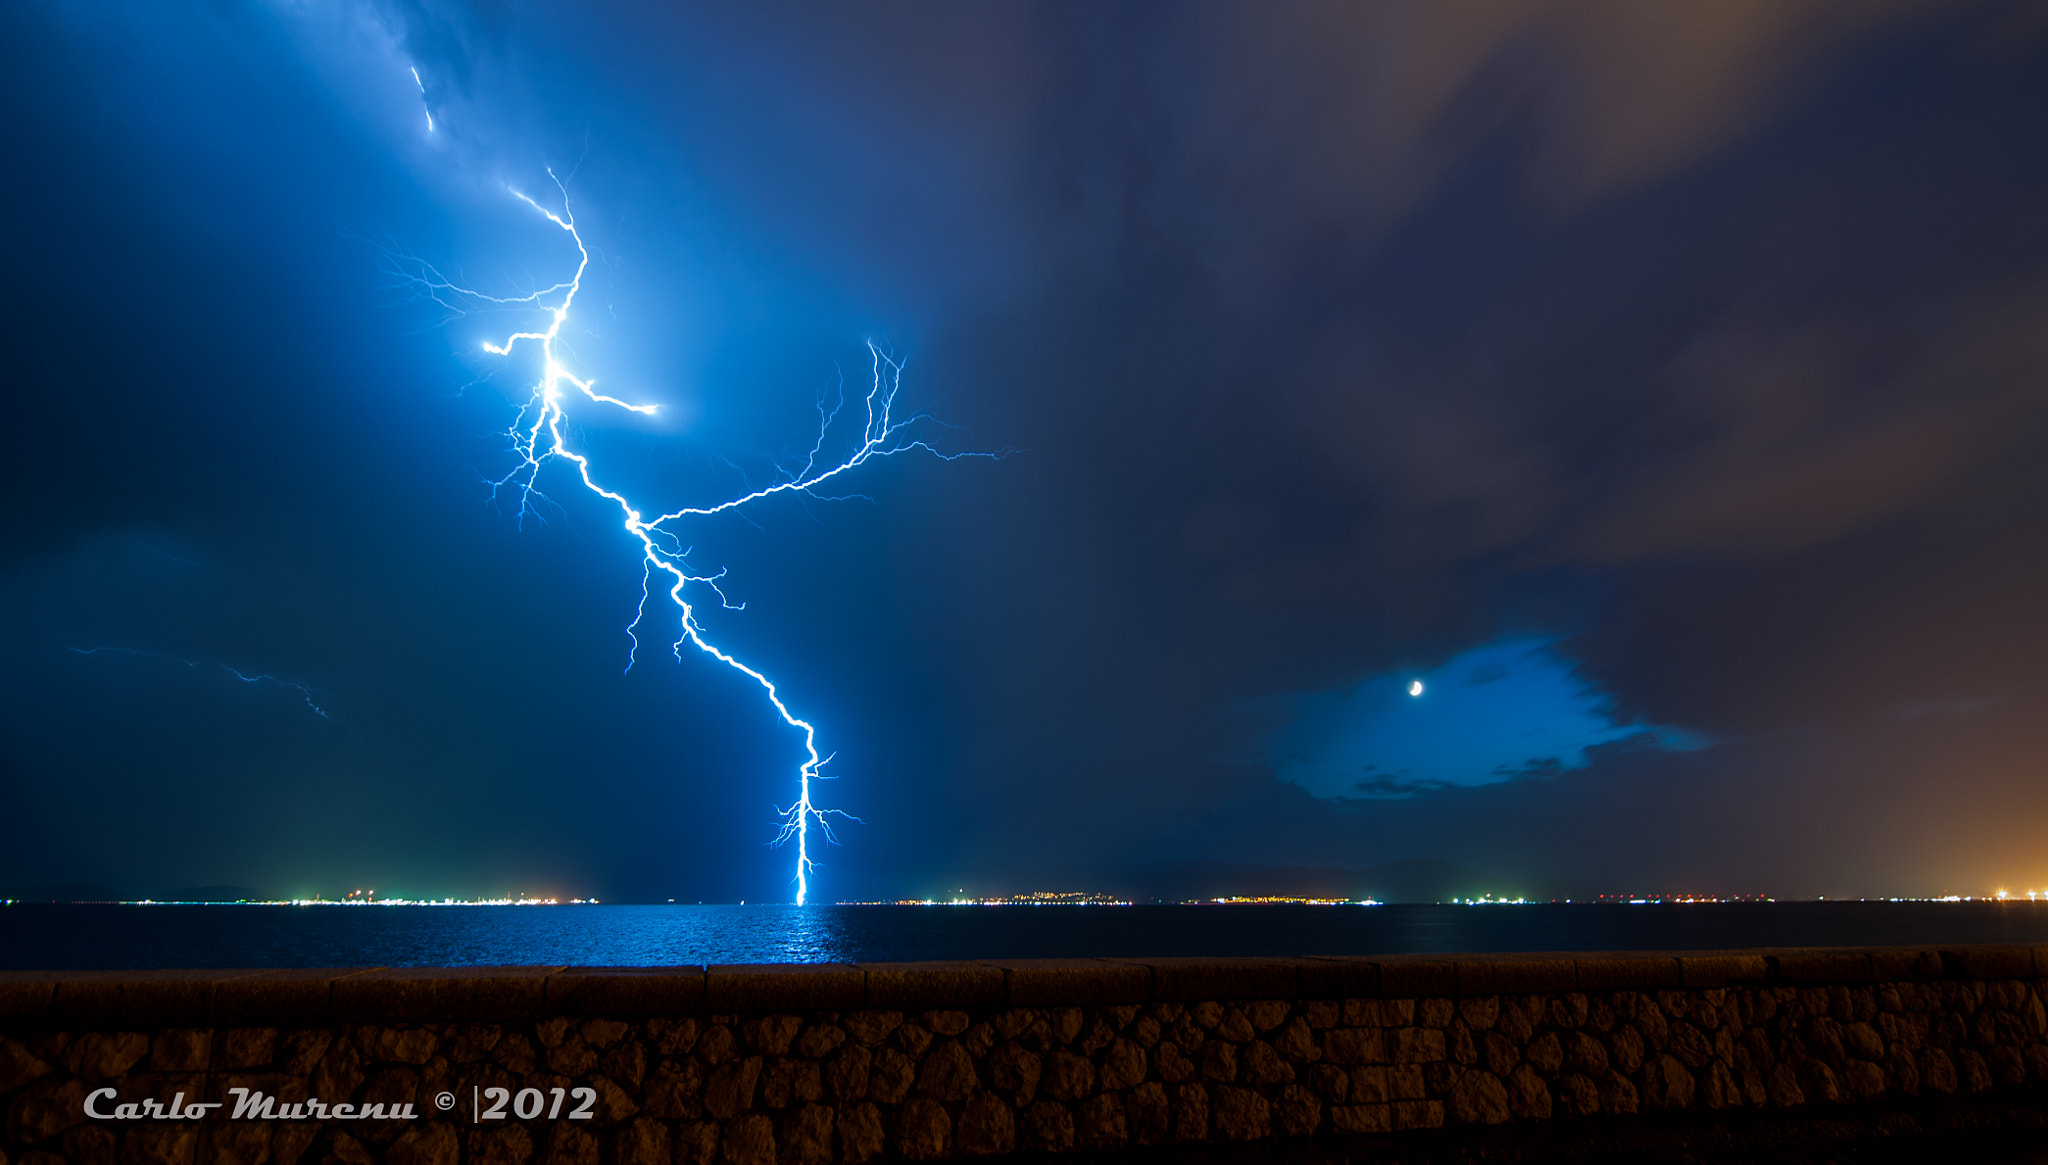 Photograph The daring bolt and distant moon by Carlo Murenu on 500px